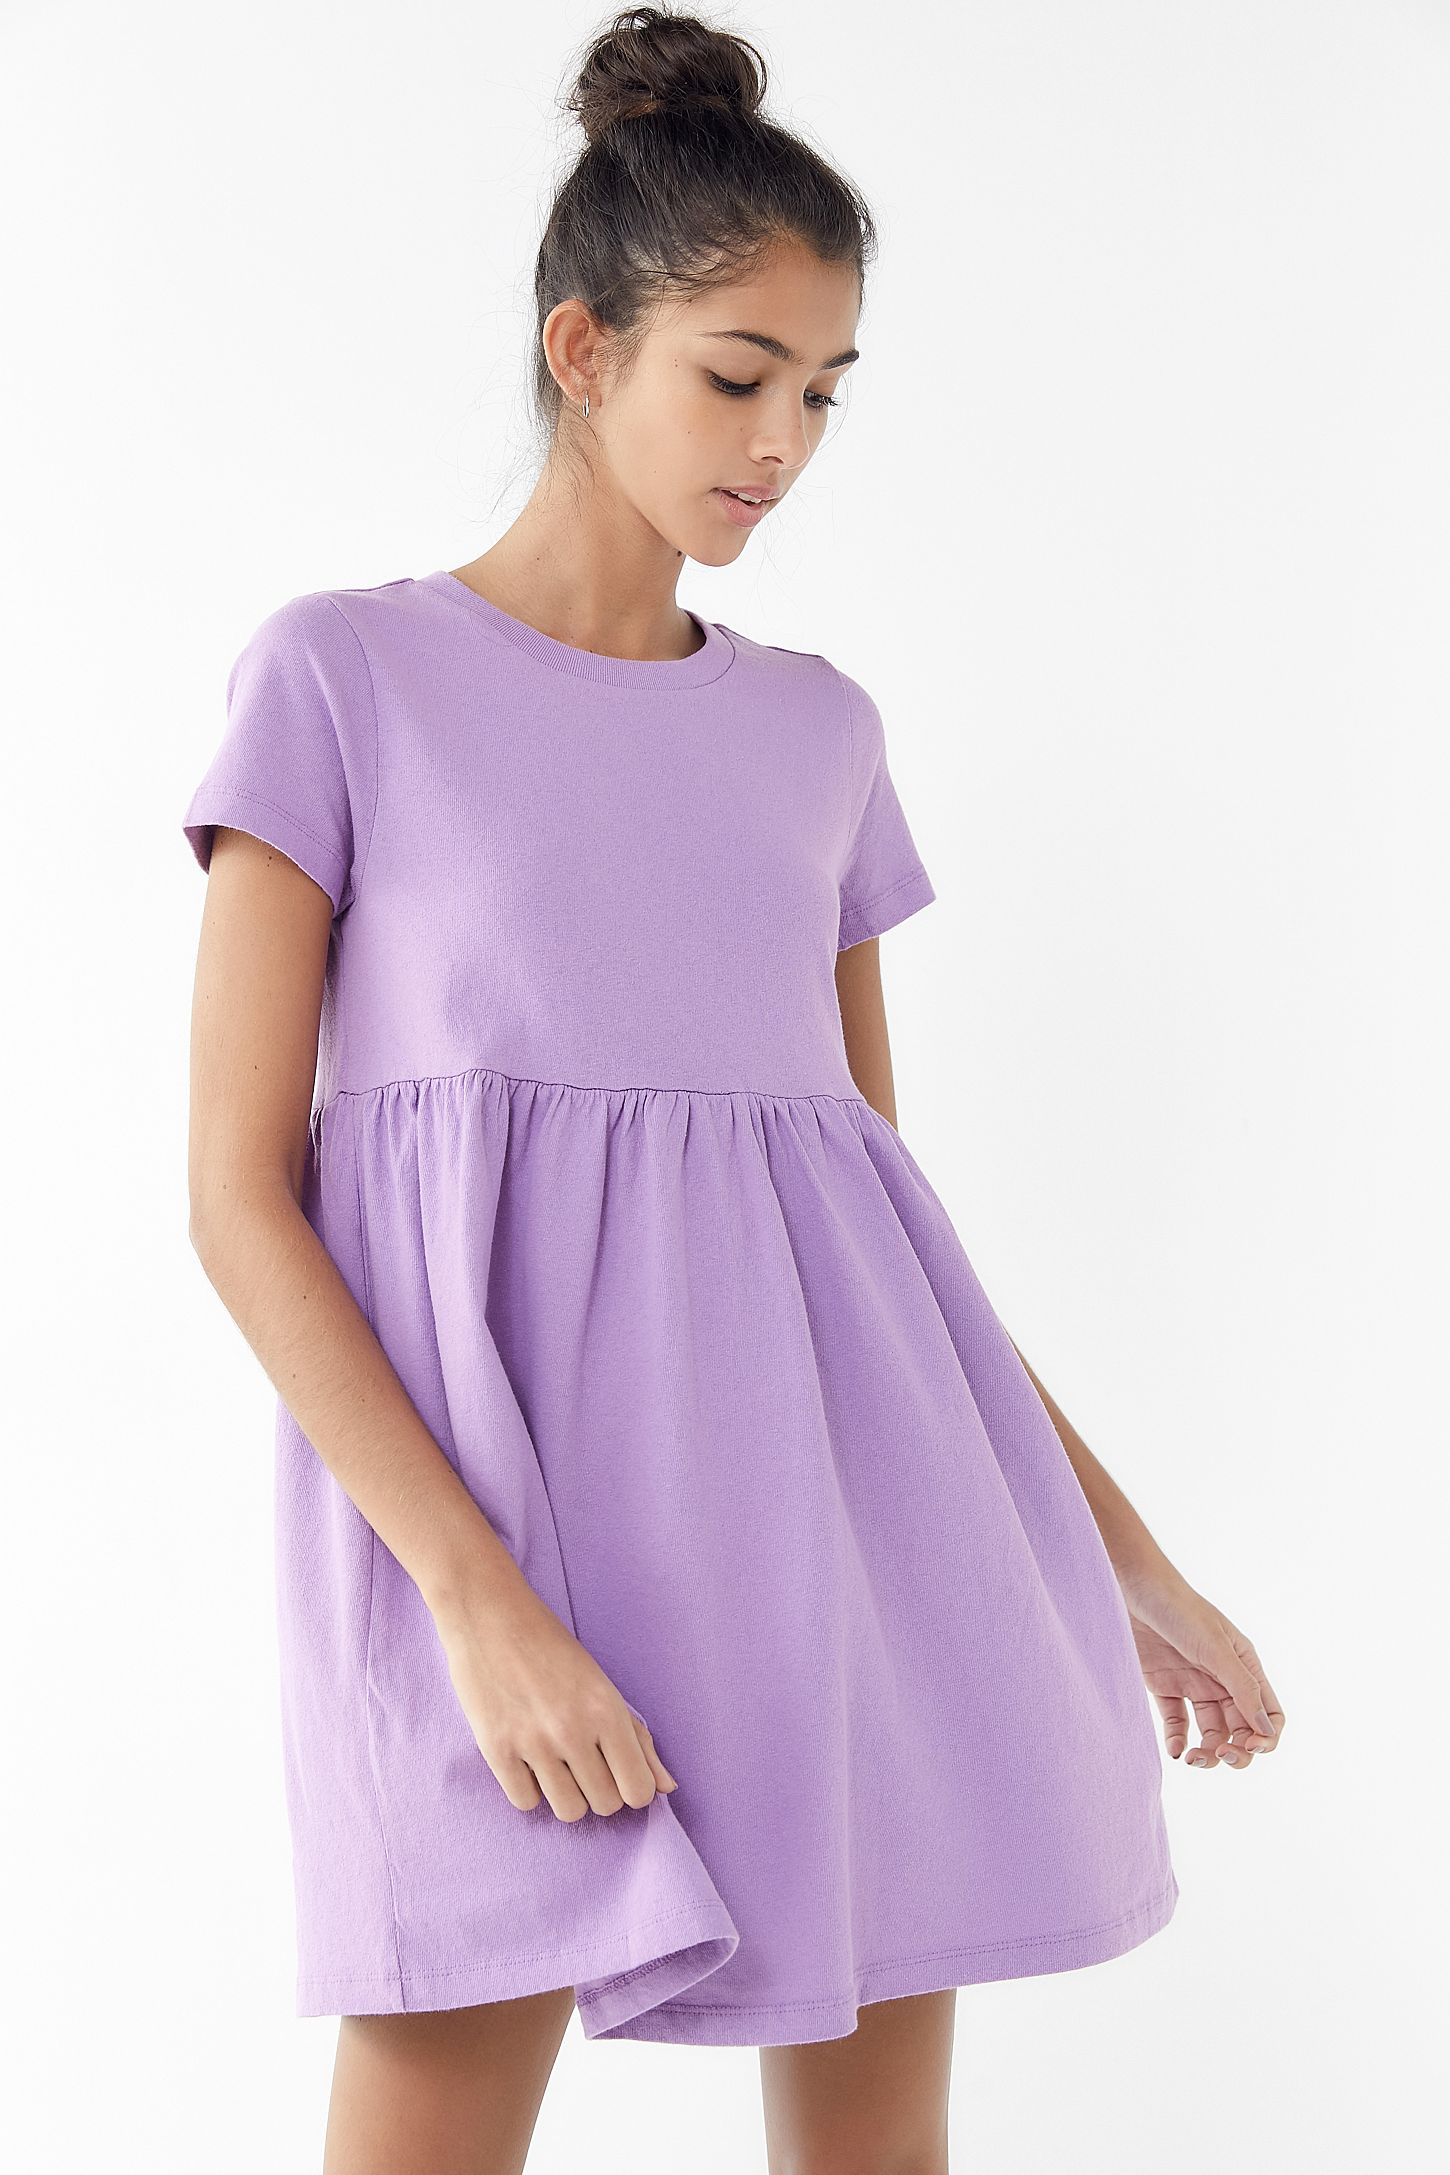 Uo Alexa Babydoll T Shirt Dress Urban Outfitters